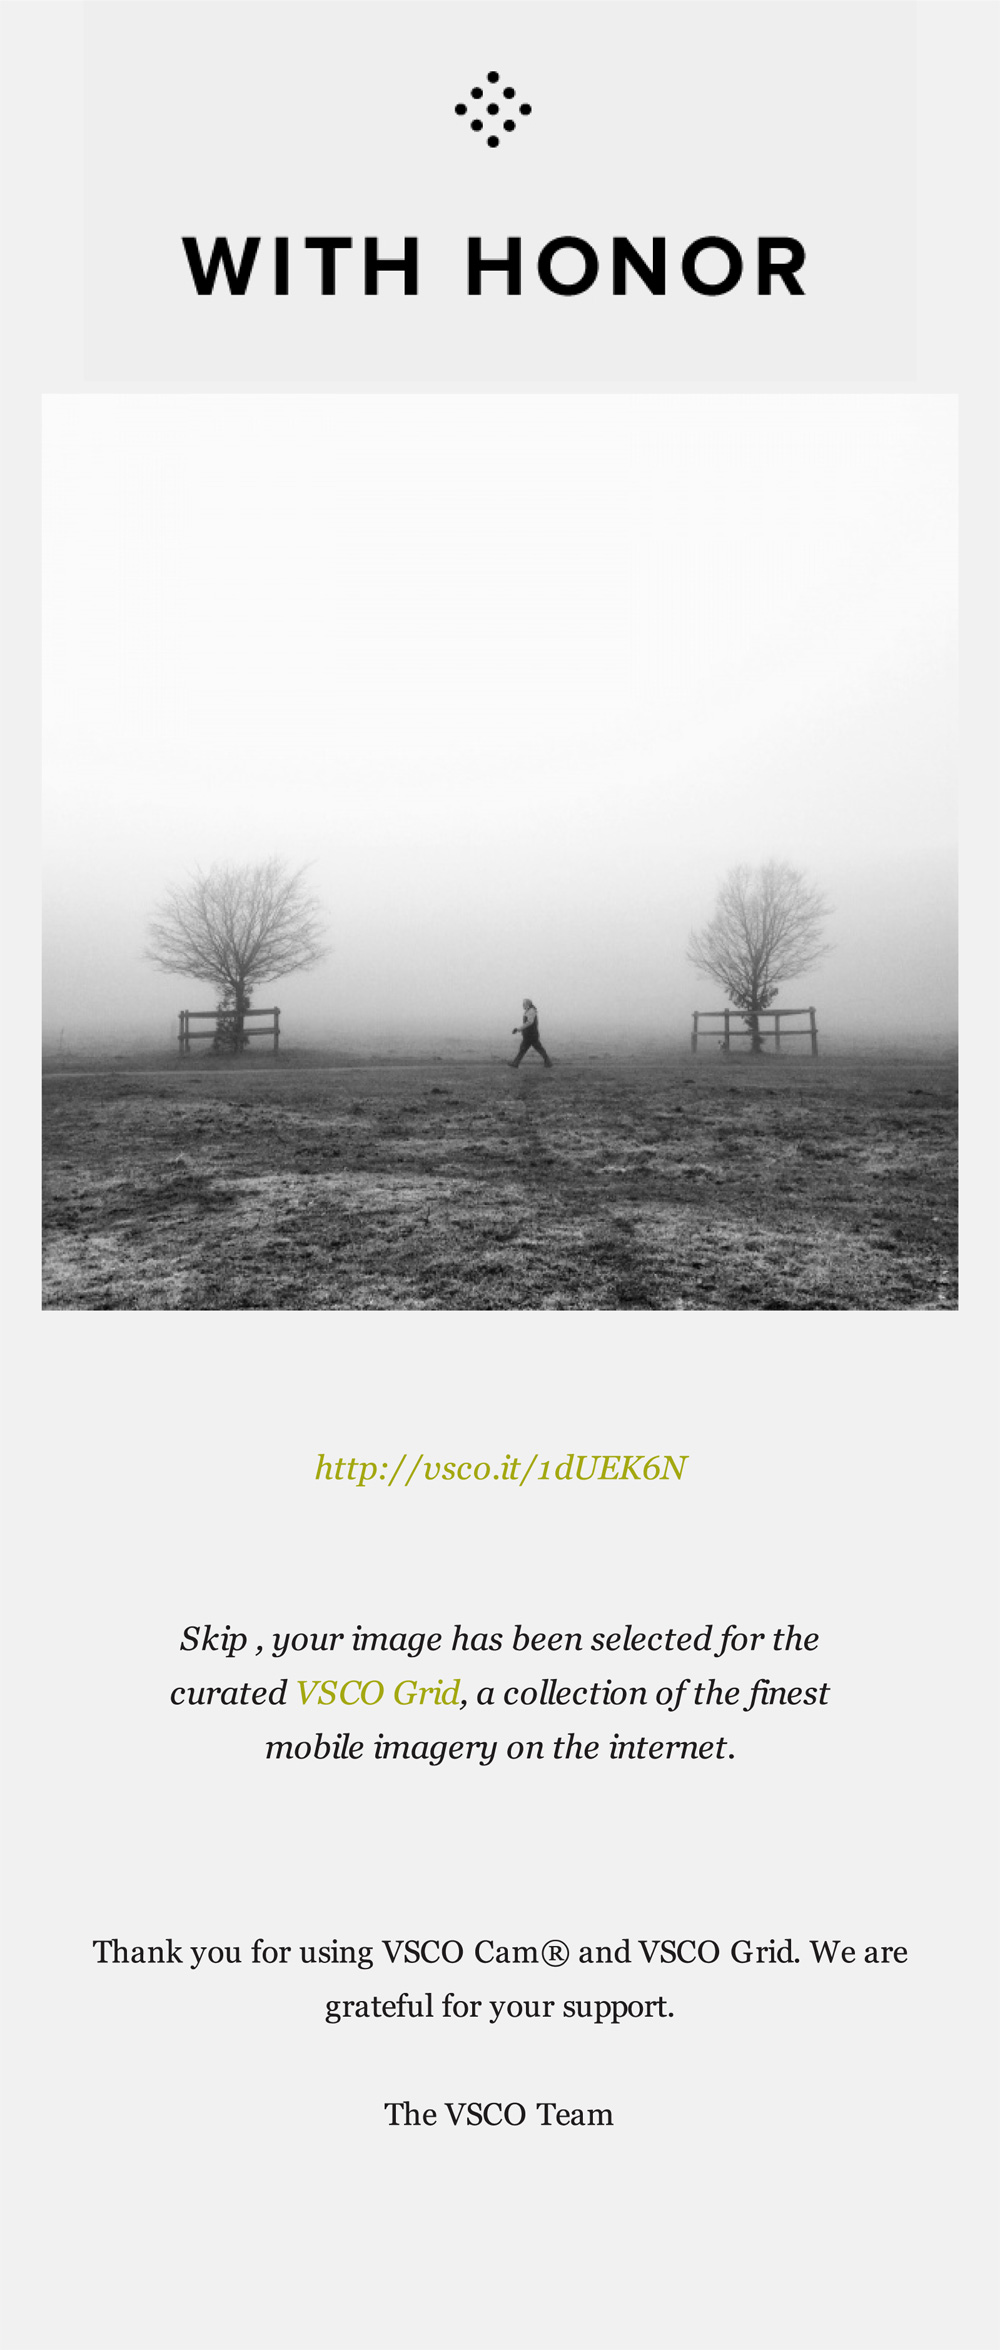 vsco grid - strolling in the fog on lincoln west common